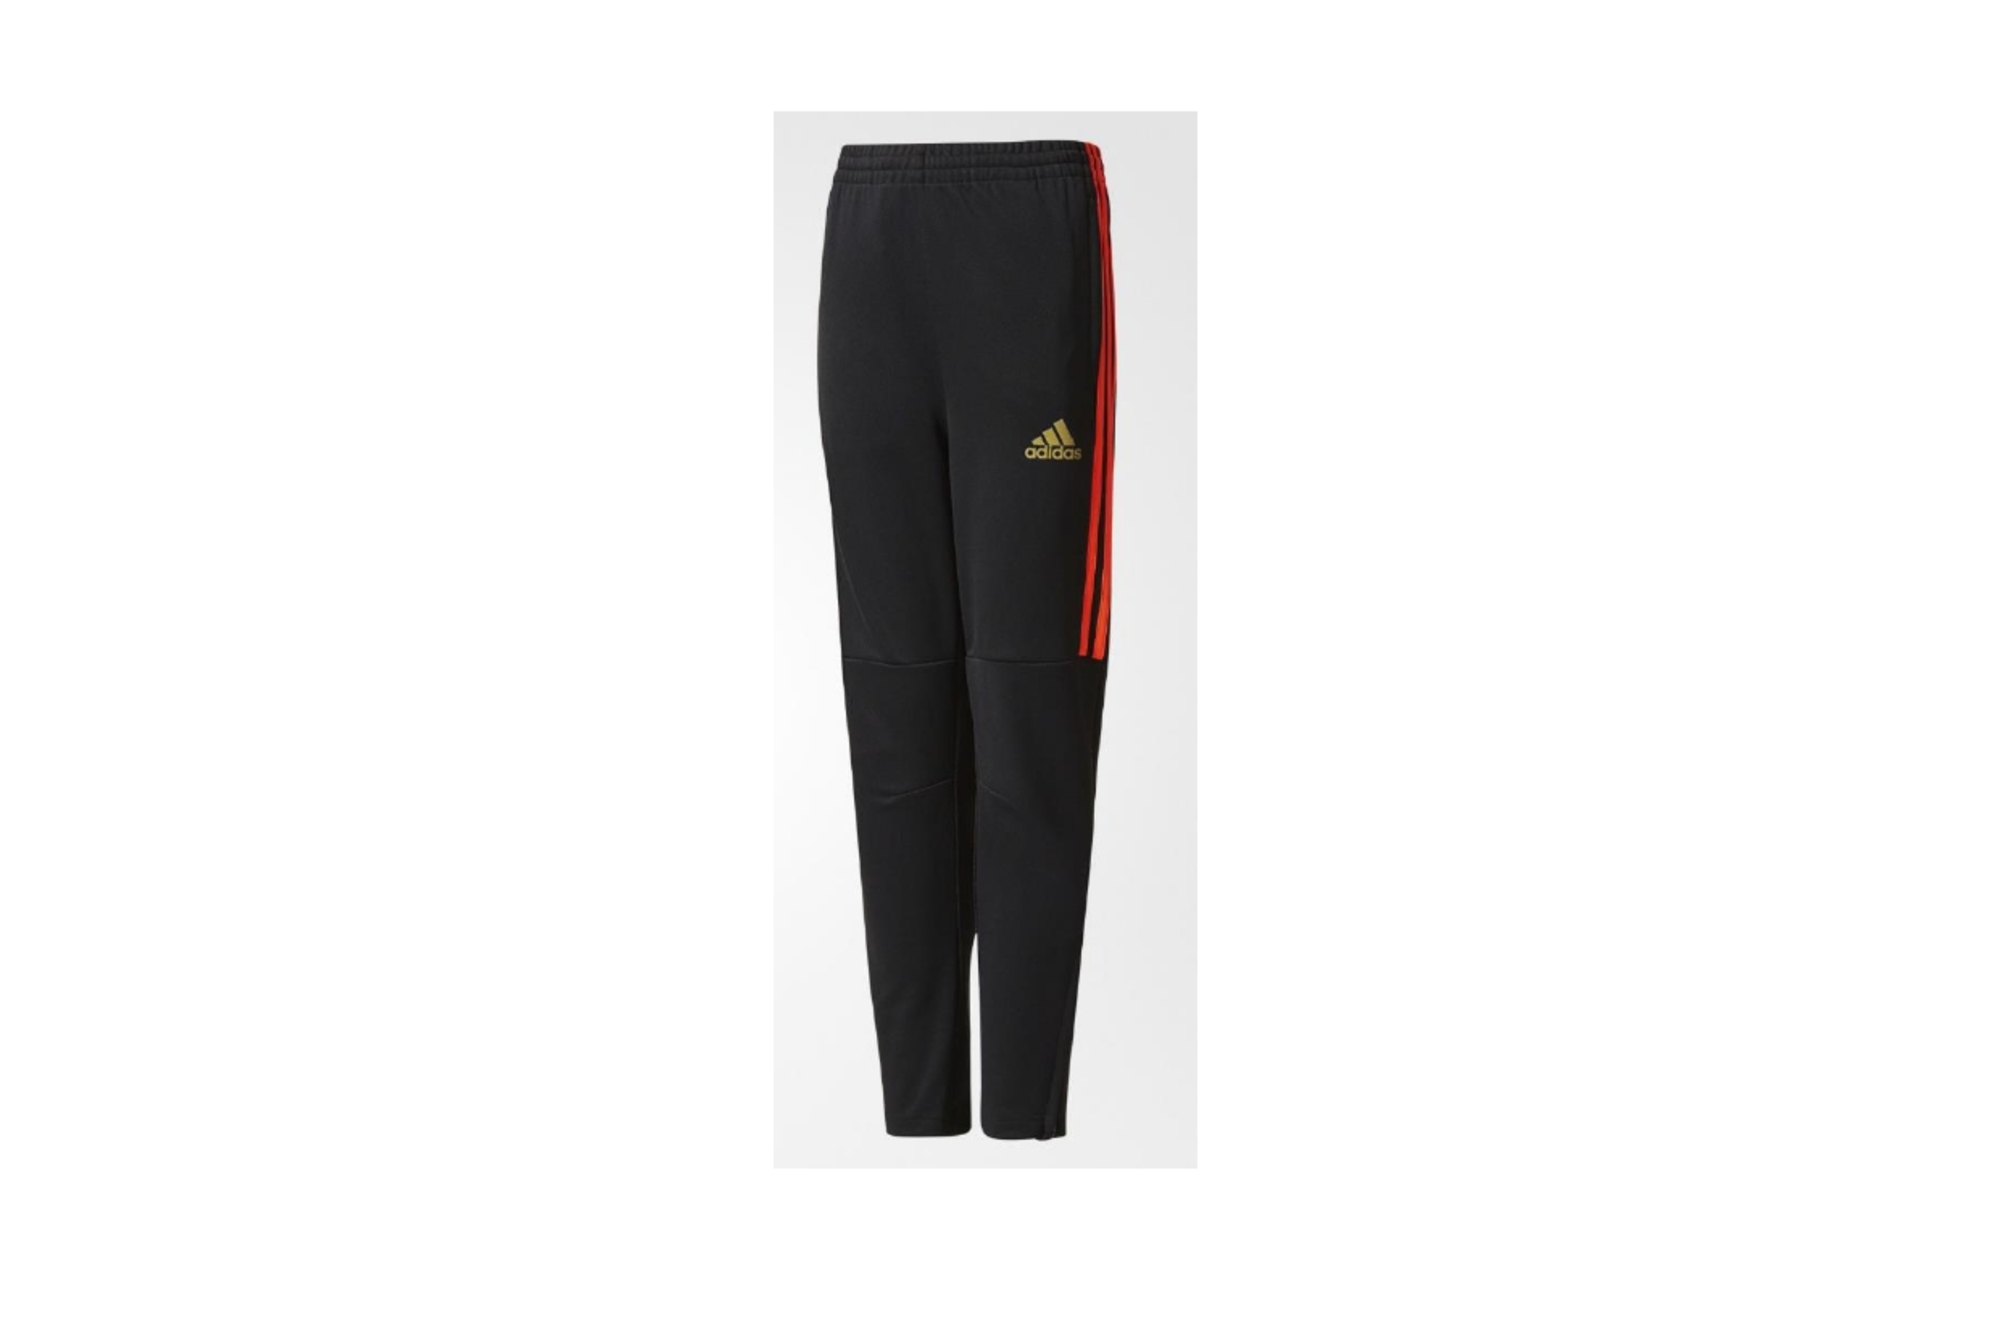 Pantaloni Adidas Junior righe Arancio